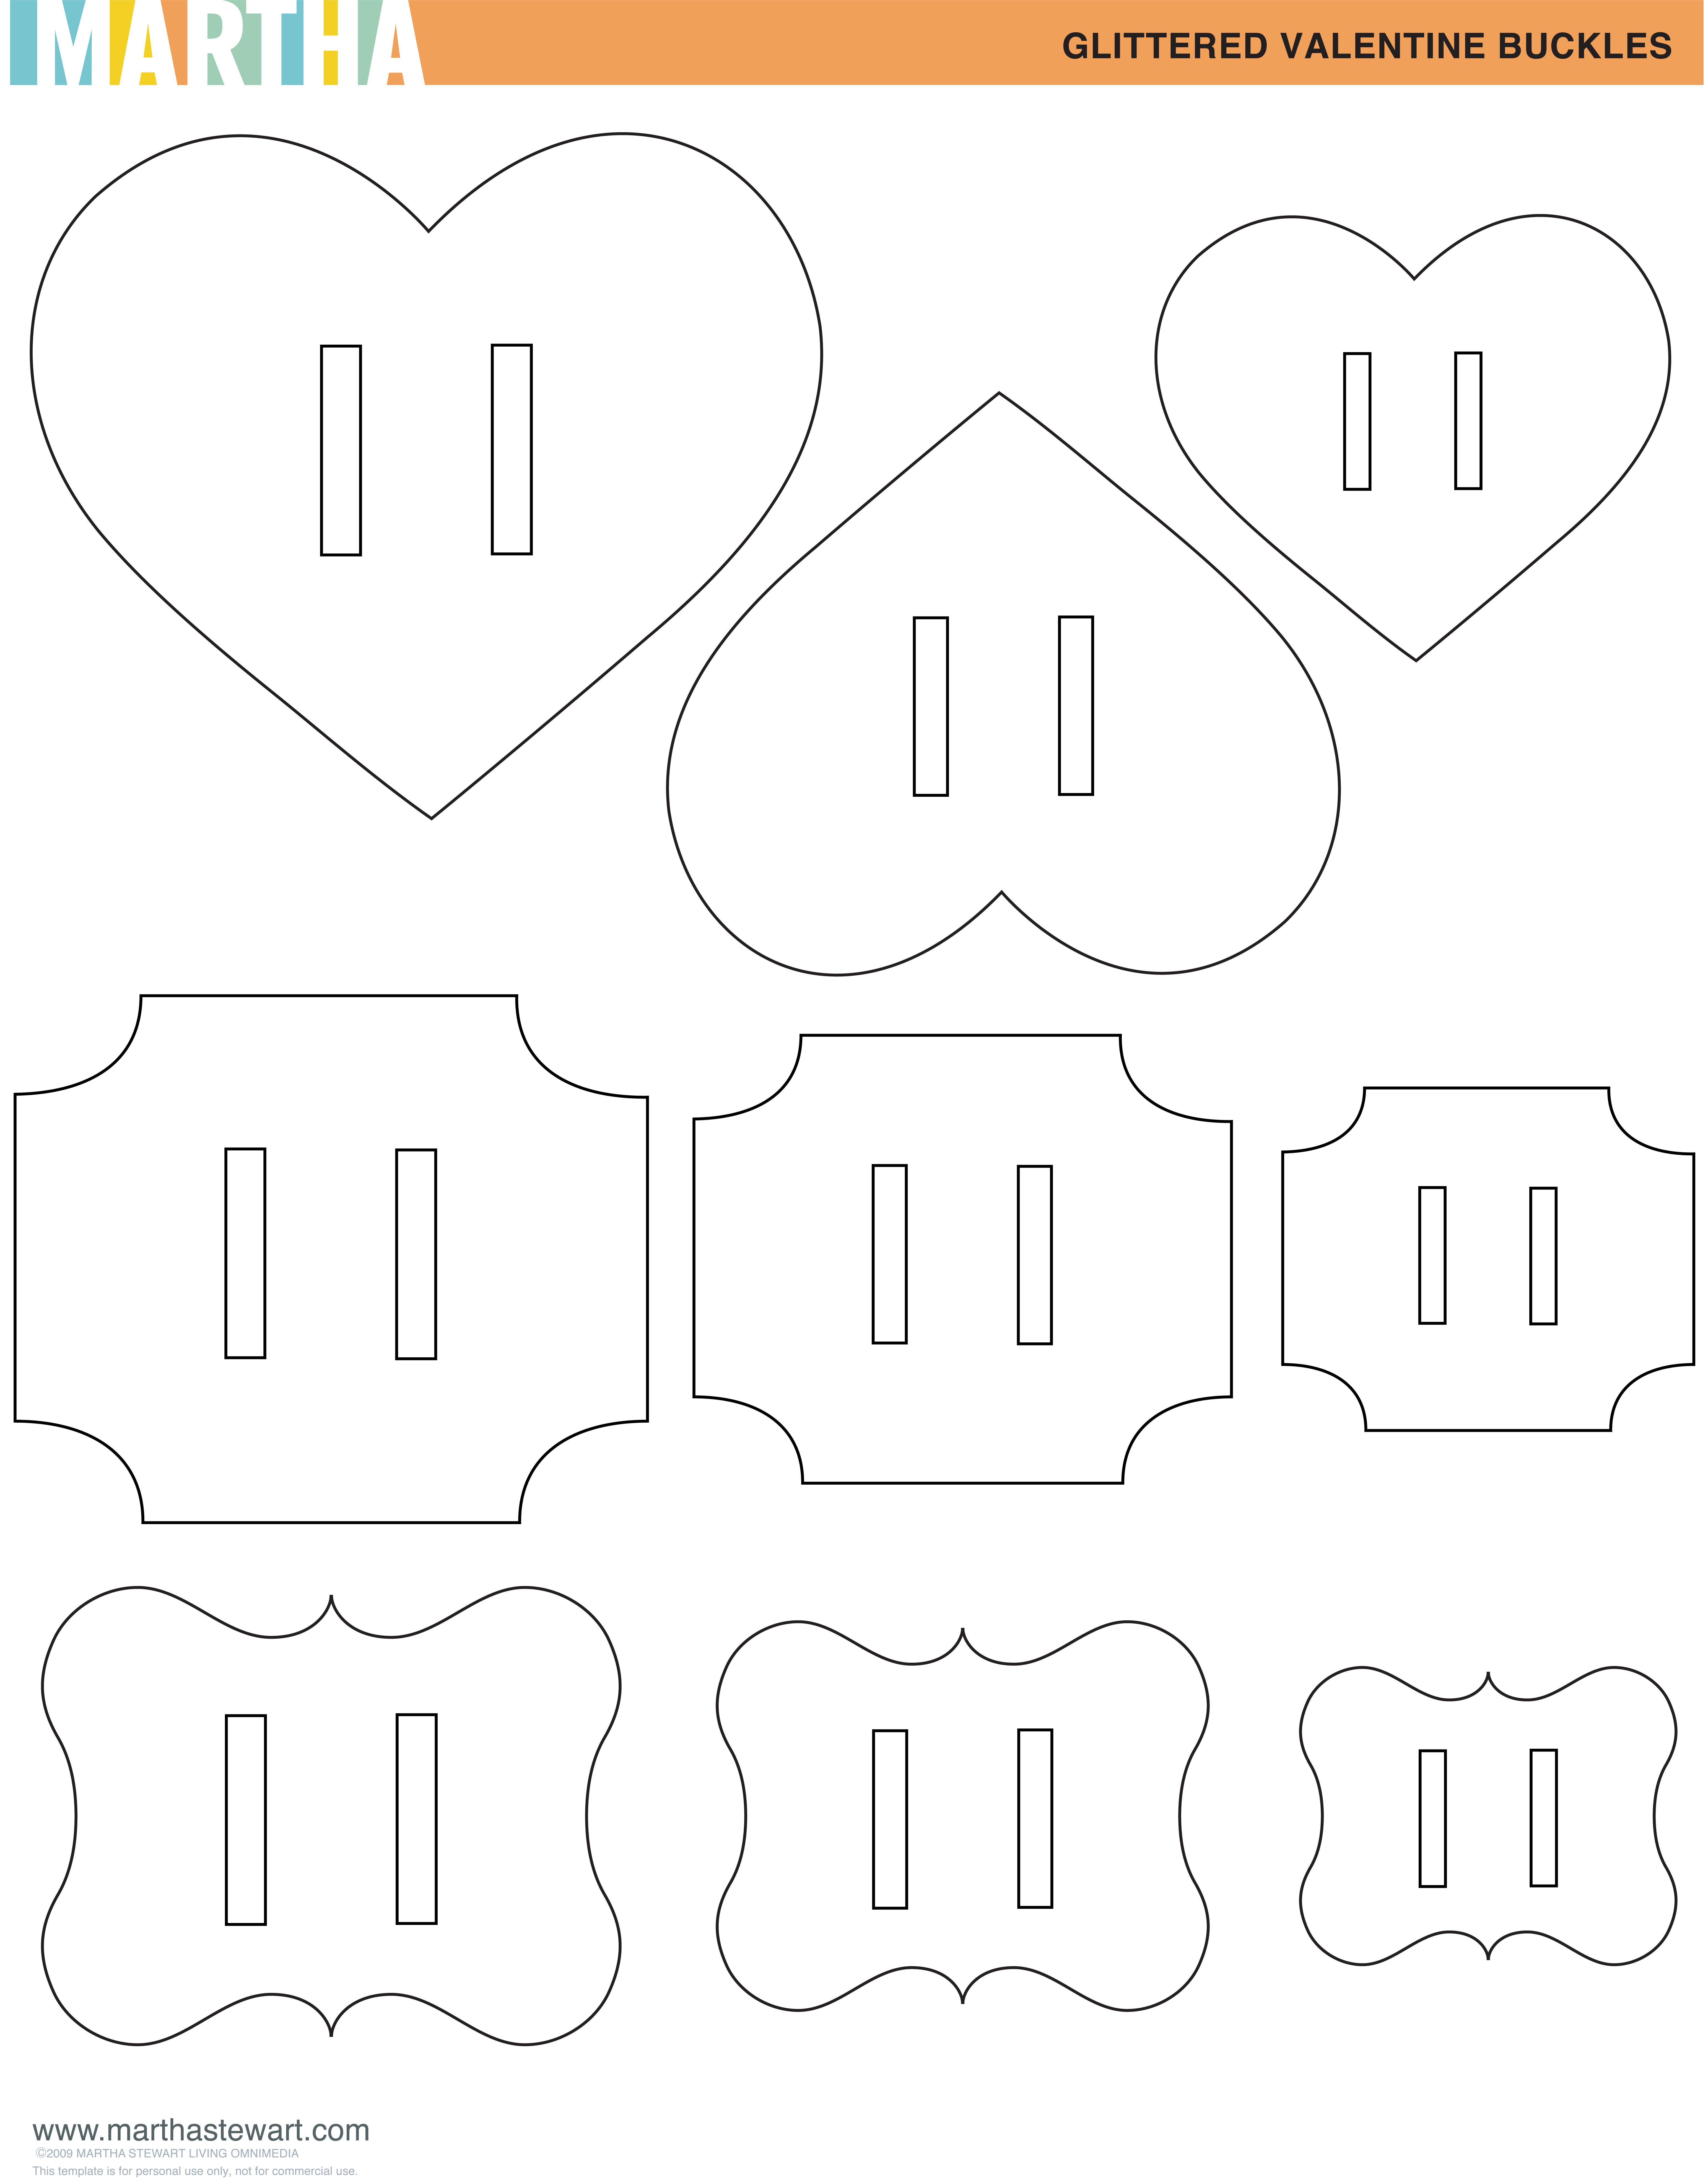 buckle templates PDF here imagesrthastew Project & video here